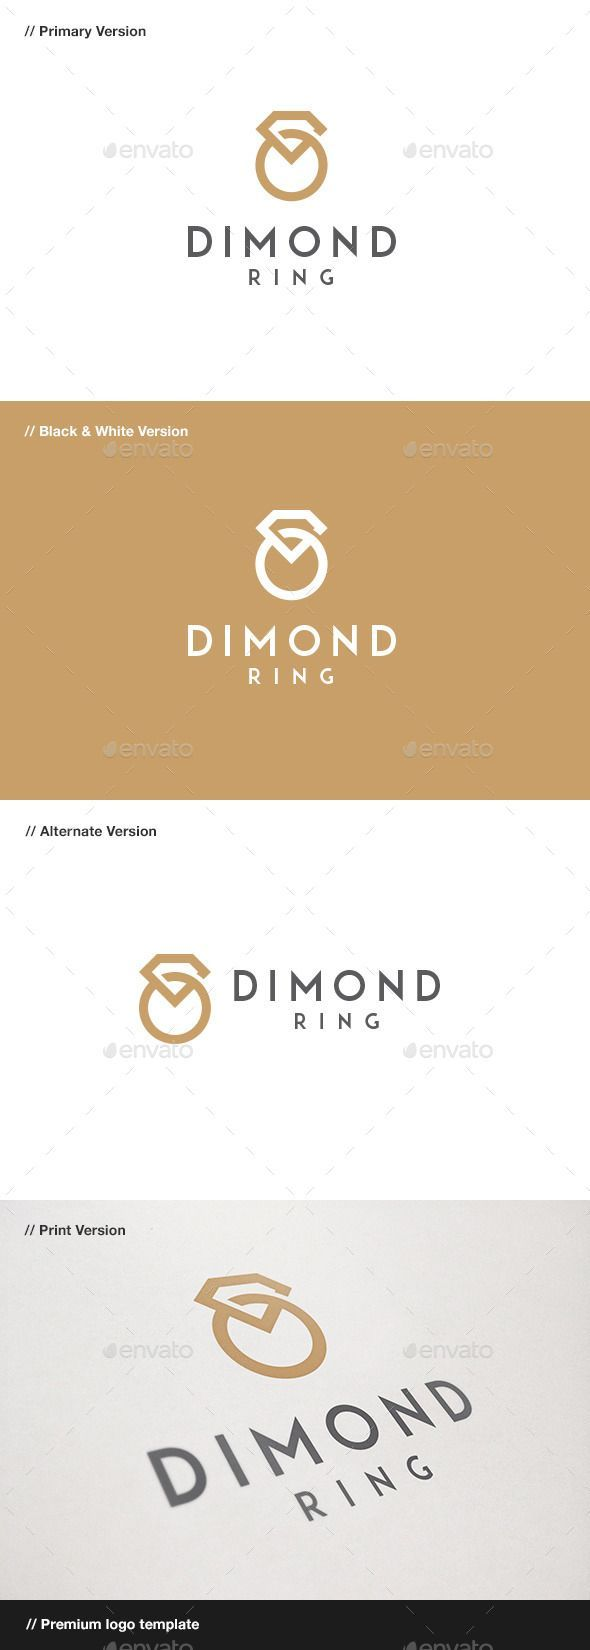 Diamond Ring Jewelry Logo — Vector EPS #logo #brand • Available here → gra... -  Diamond Ring Jewelry Logo — Vector EPS #logo #brand • Available here → graphicriver.net/…  - #available #brand #diamond #EPS #gra #jewelry #jewelryinspiration #jewelrylogo #jewelrypackaging #Logo #Ring #vector